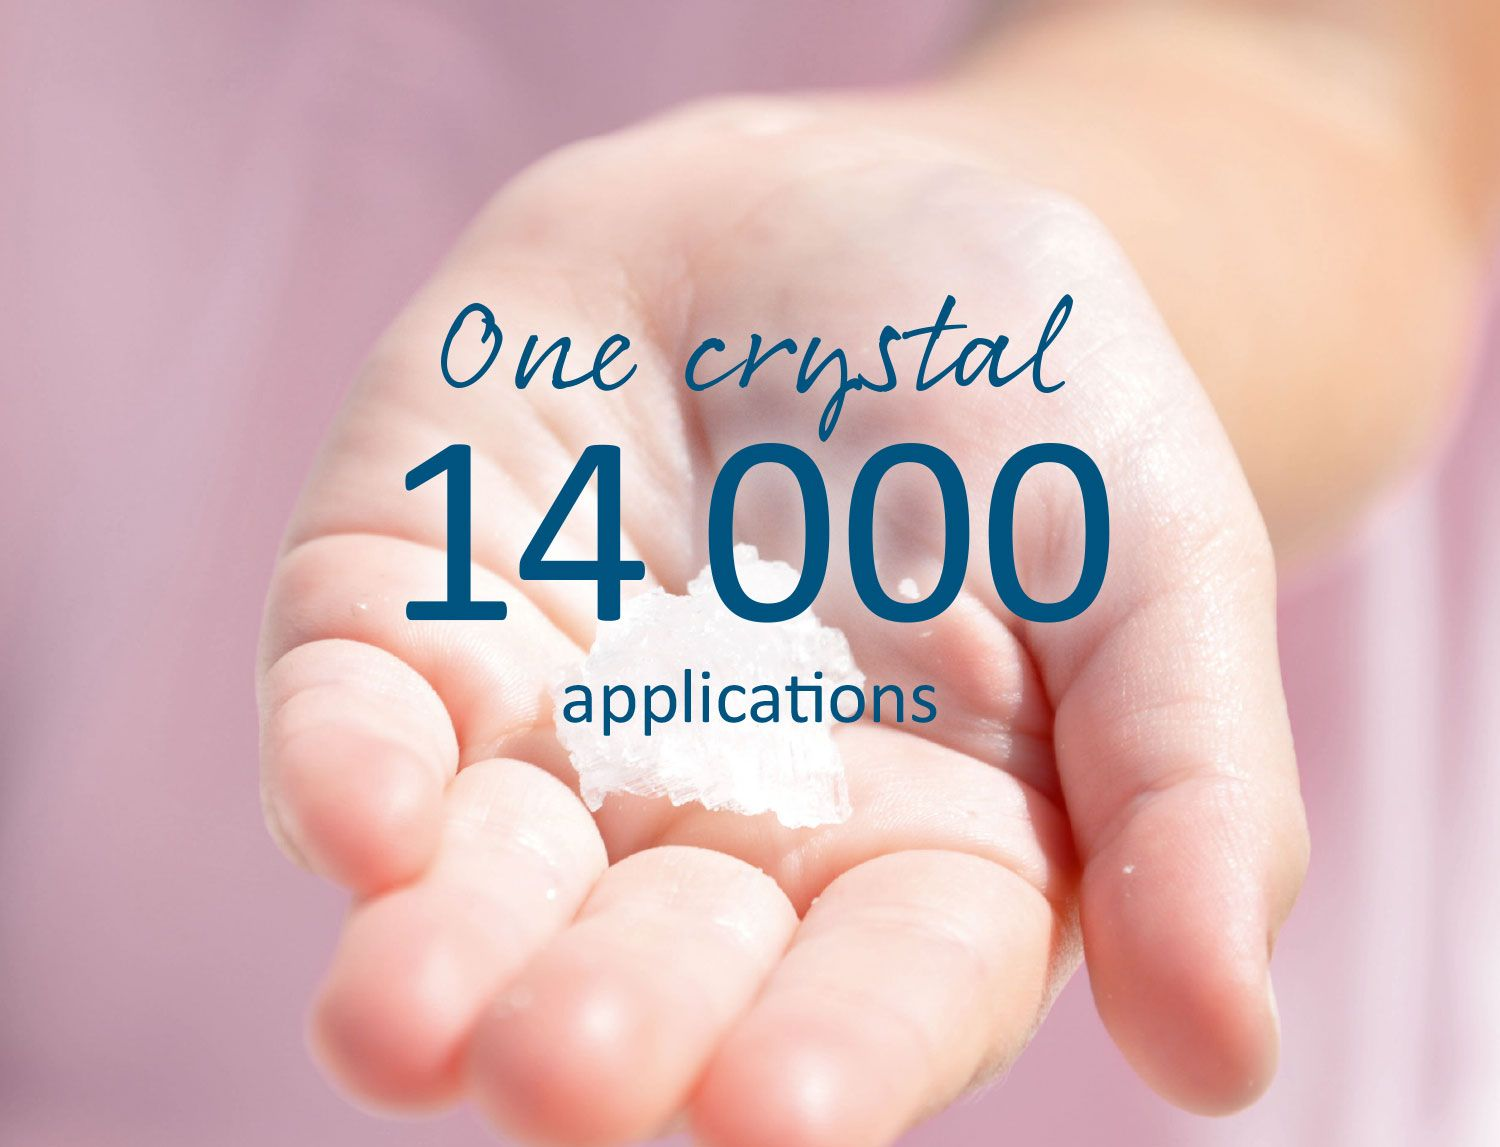 One crystal, 14000 applications